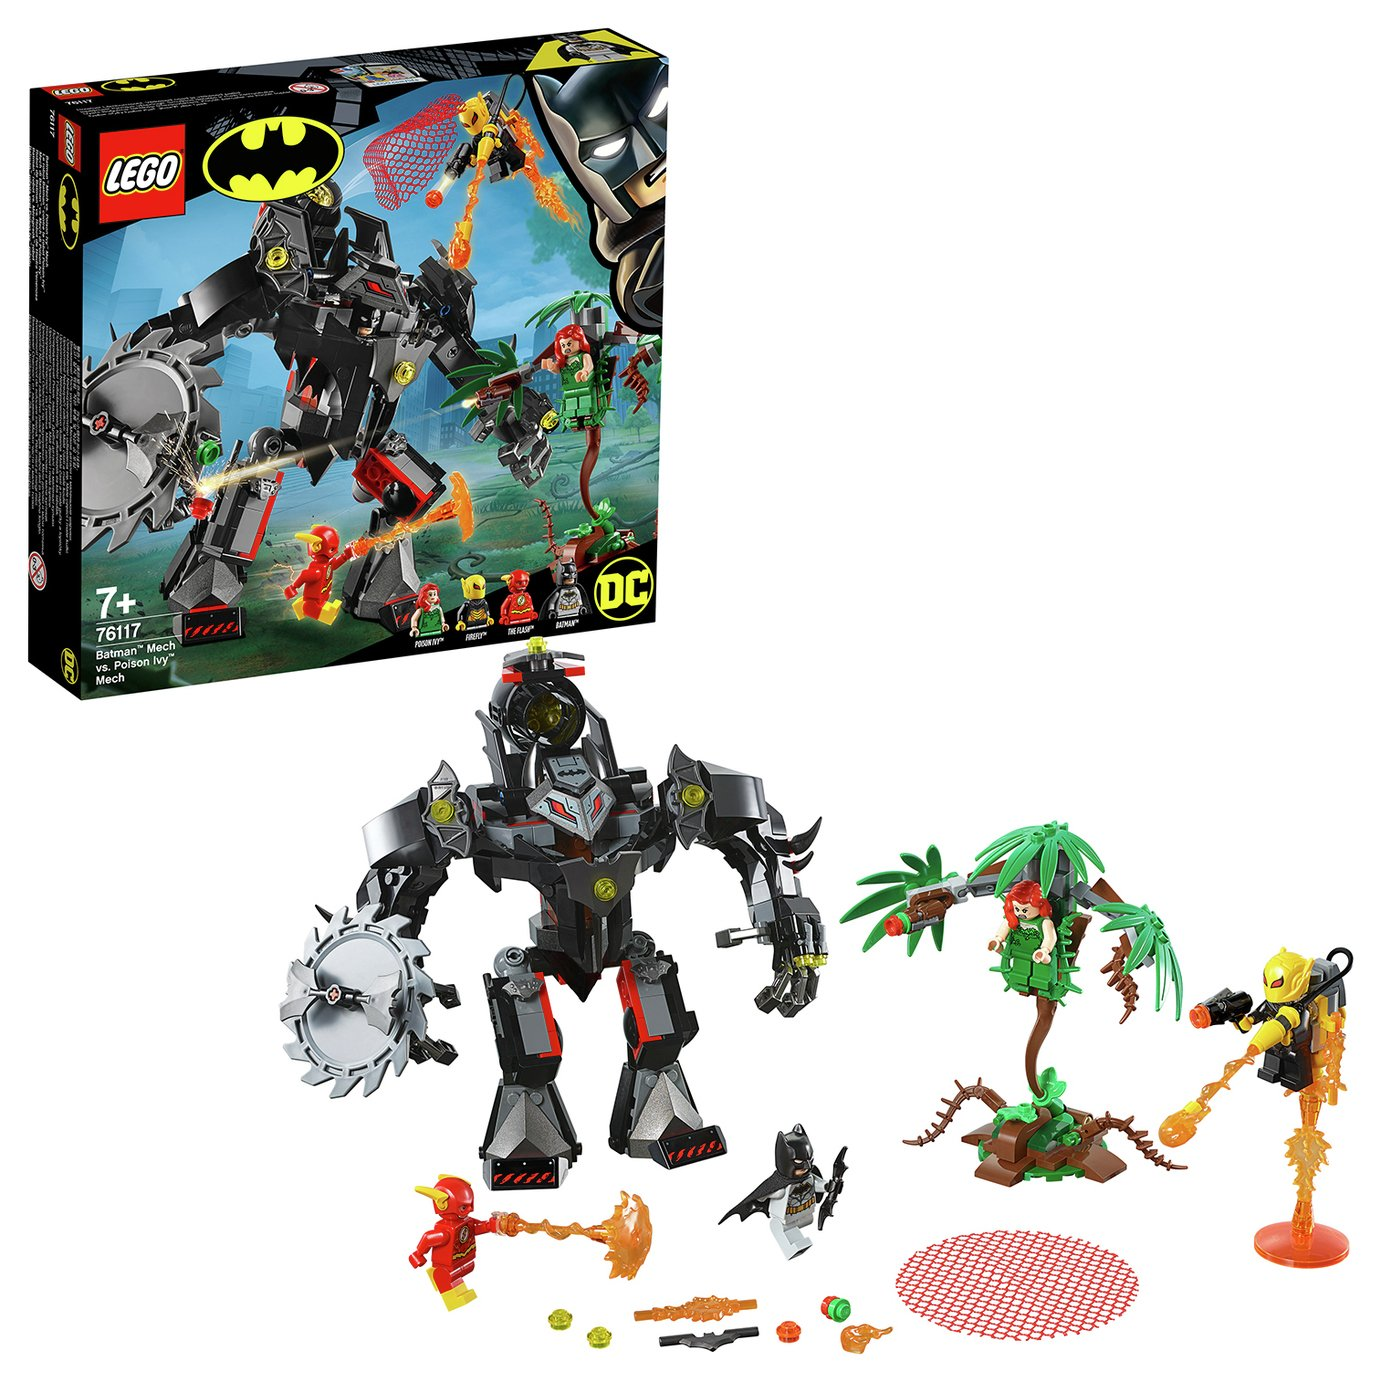 LEGO Superhero Batman vs Mech Plus Action Figure Set - 76117